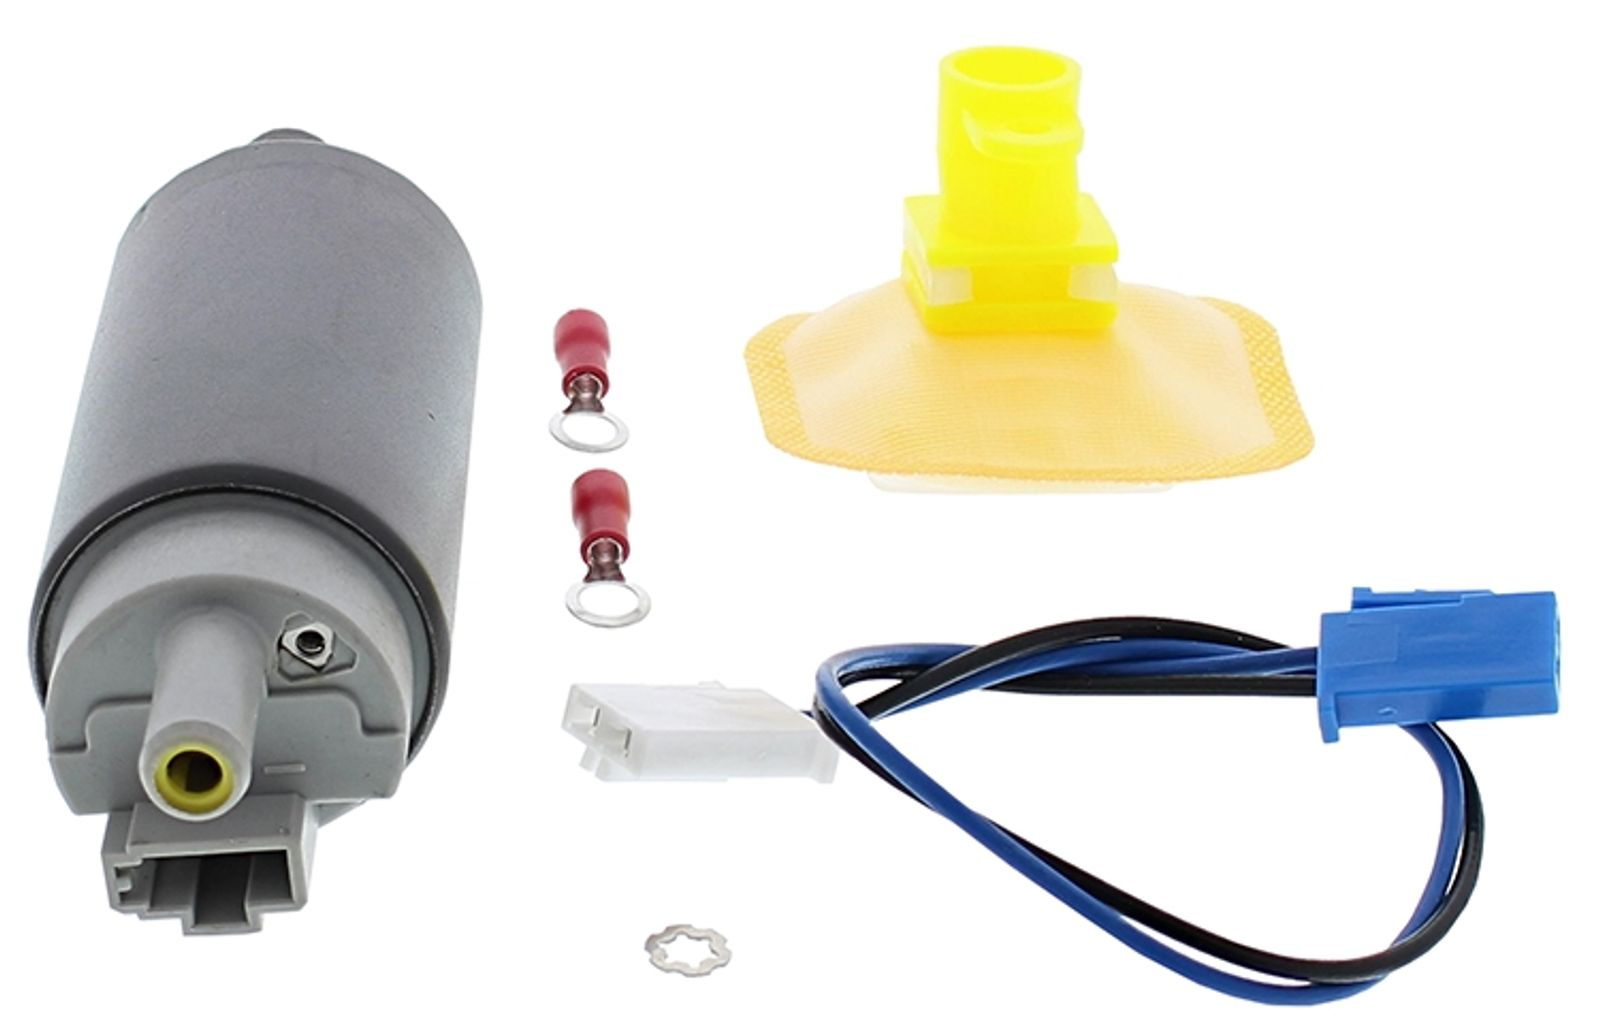 Wrp Fuel Pumps - WRP472024 image